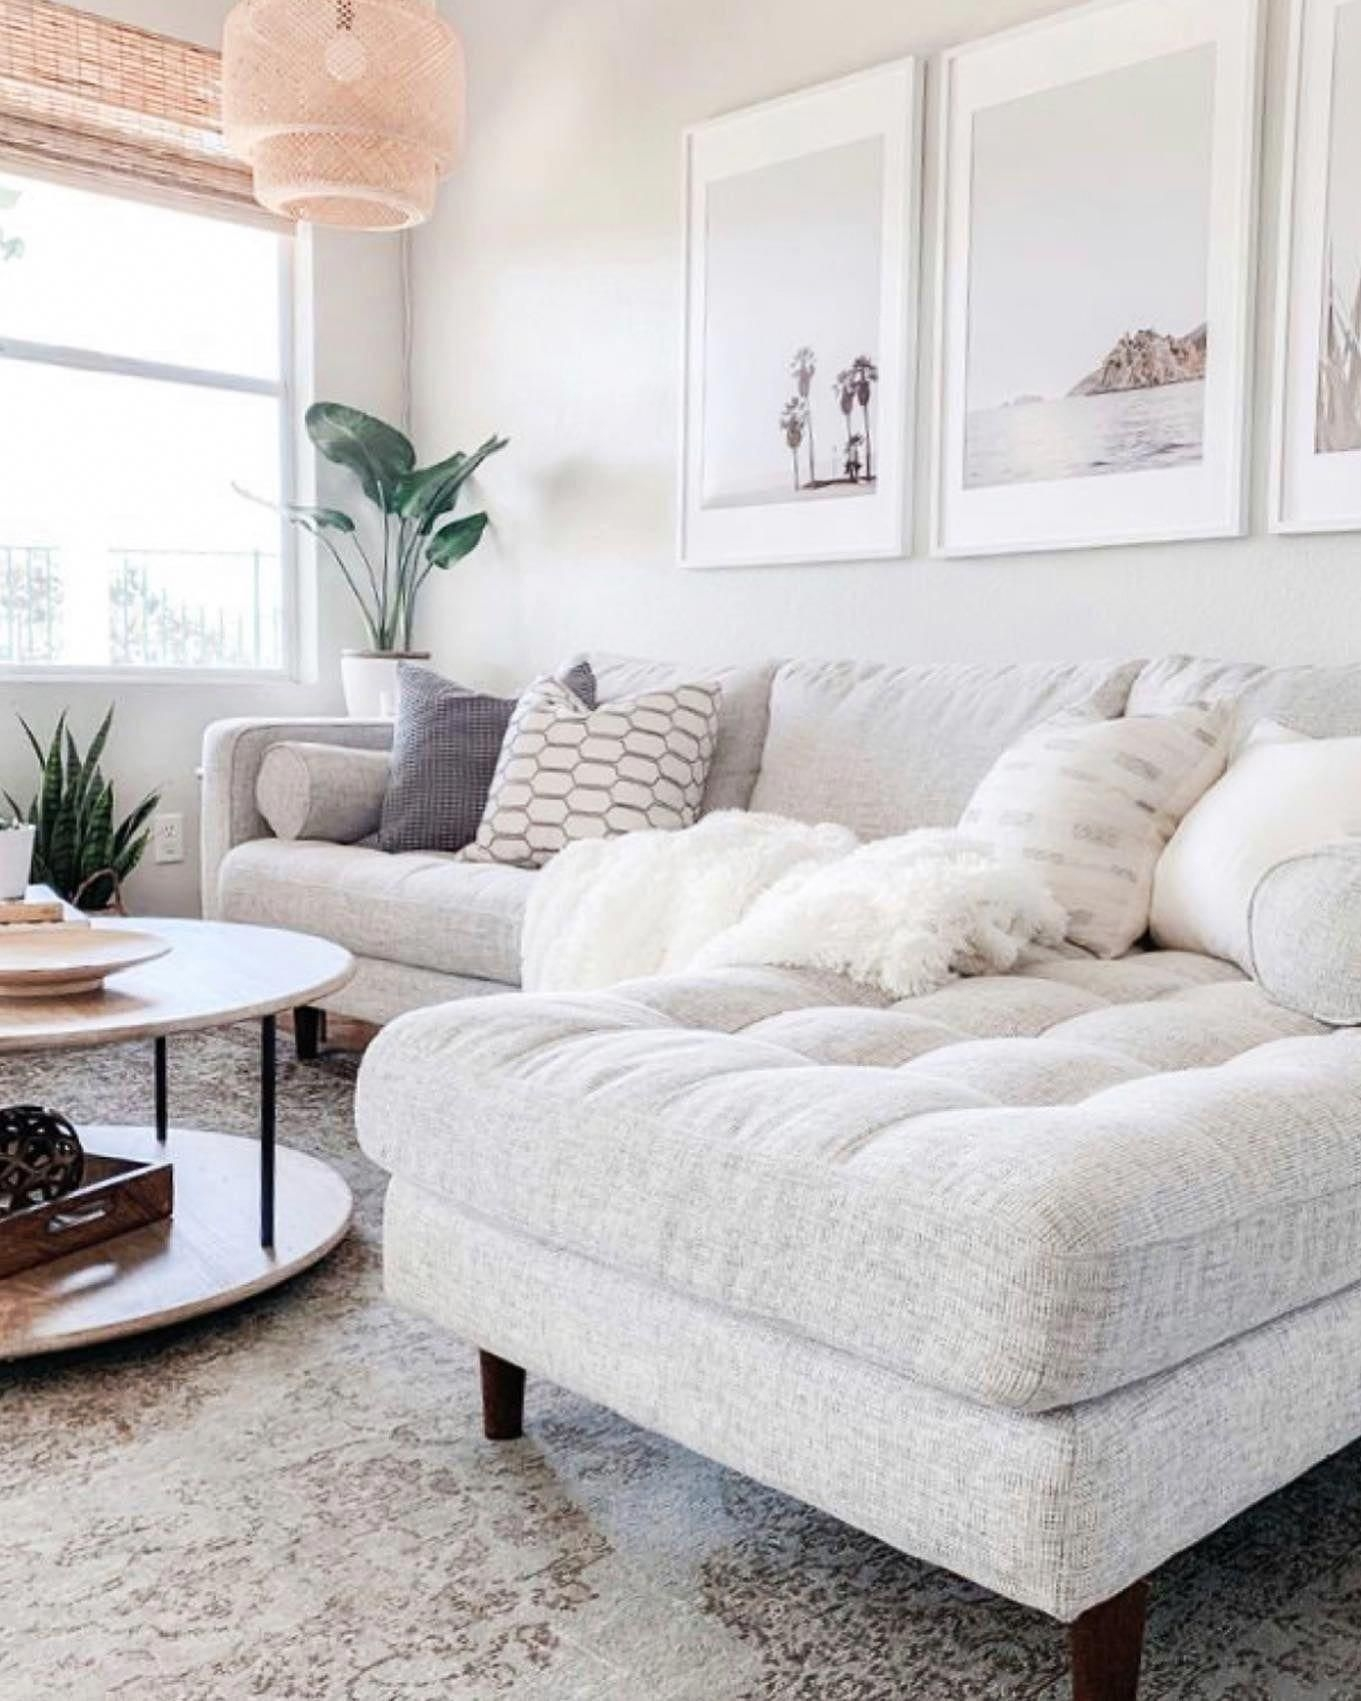 Fanciable Apartment Living Room Furniture On Breathtaking Cosy Apartment Living Room Livingroom sofa On Apartment Living Room Furniture